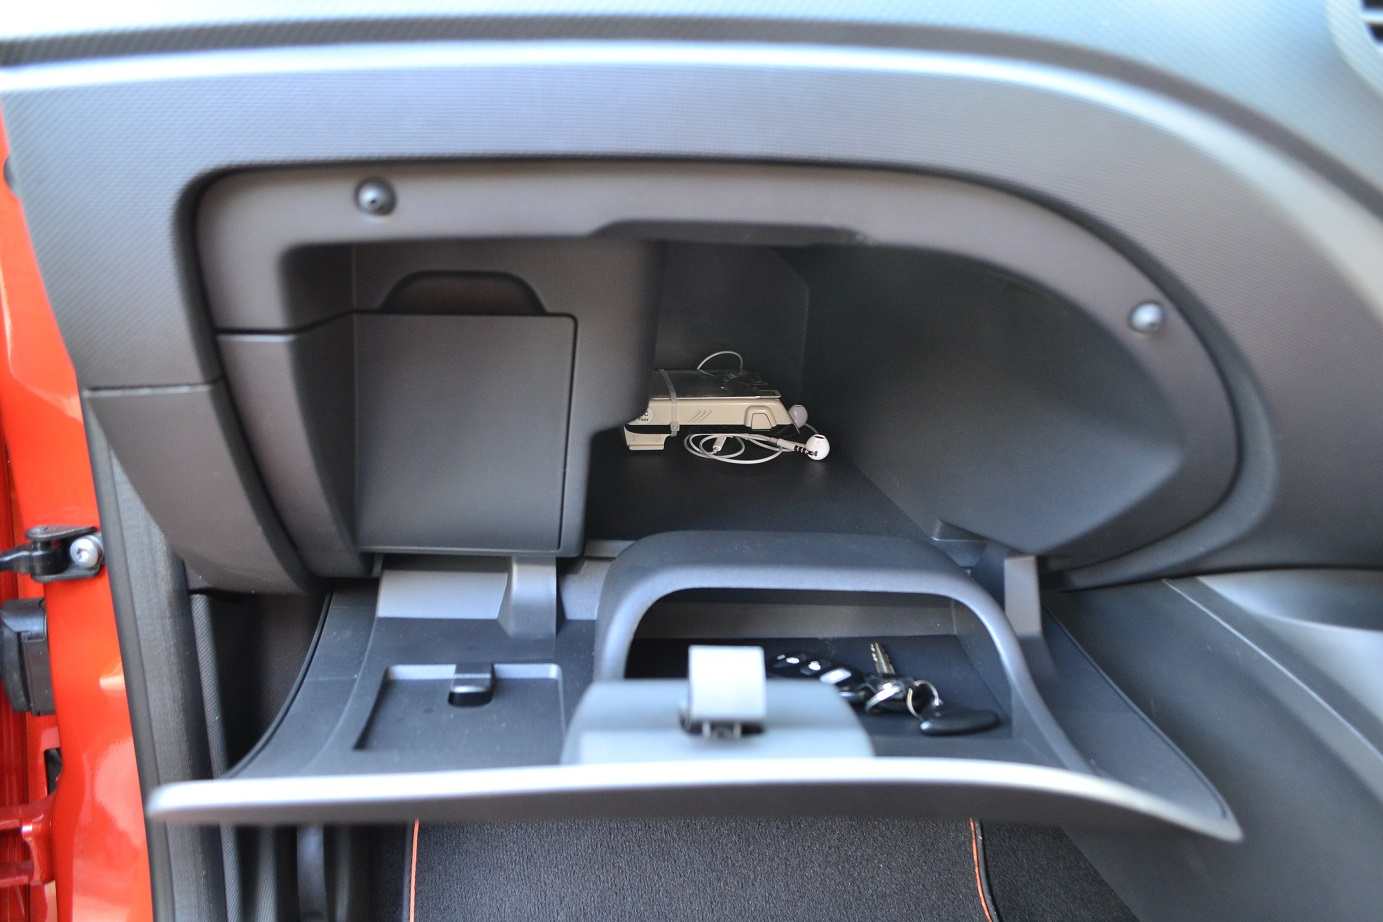 The Malaysian Compact Suv Shootout Part Ii Honda Hr V Vs Mazda Cx Kia K3 Fuse Box Has Huge Glove Compartments Whereas Captur True To Its French Idiosyncracy Offers Only Half Space While Other Is Occupied By